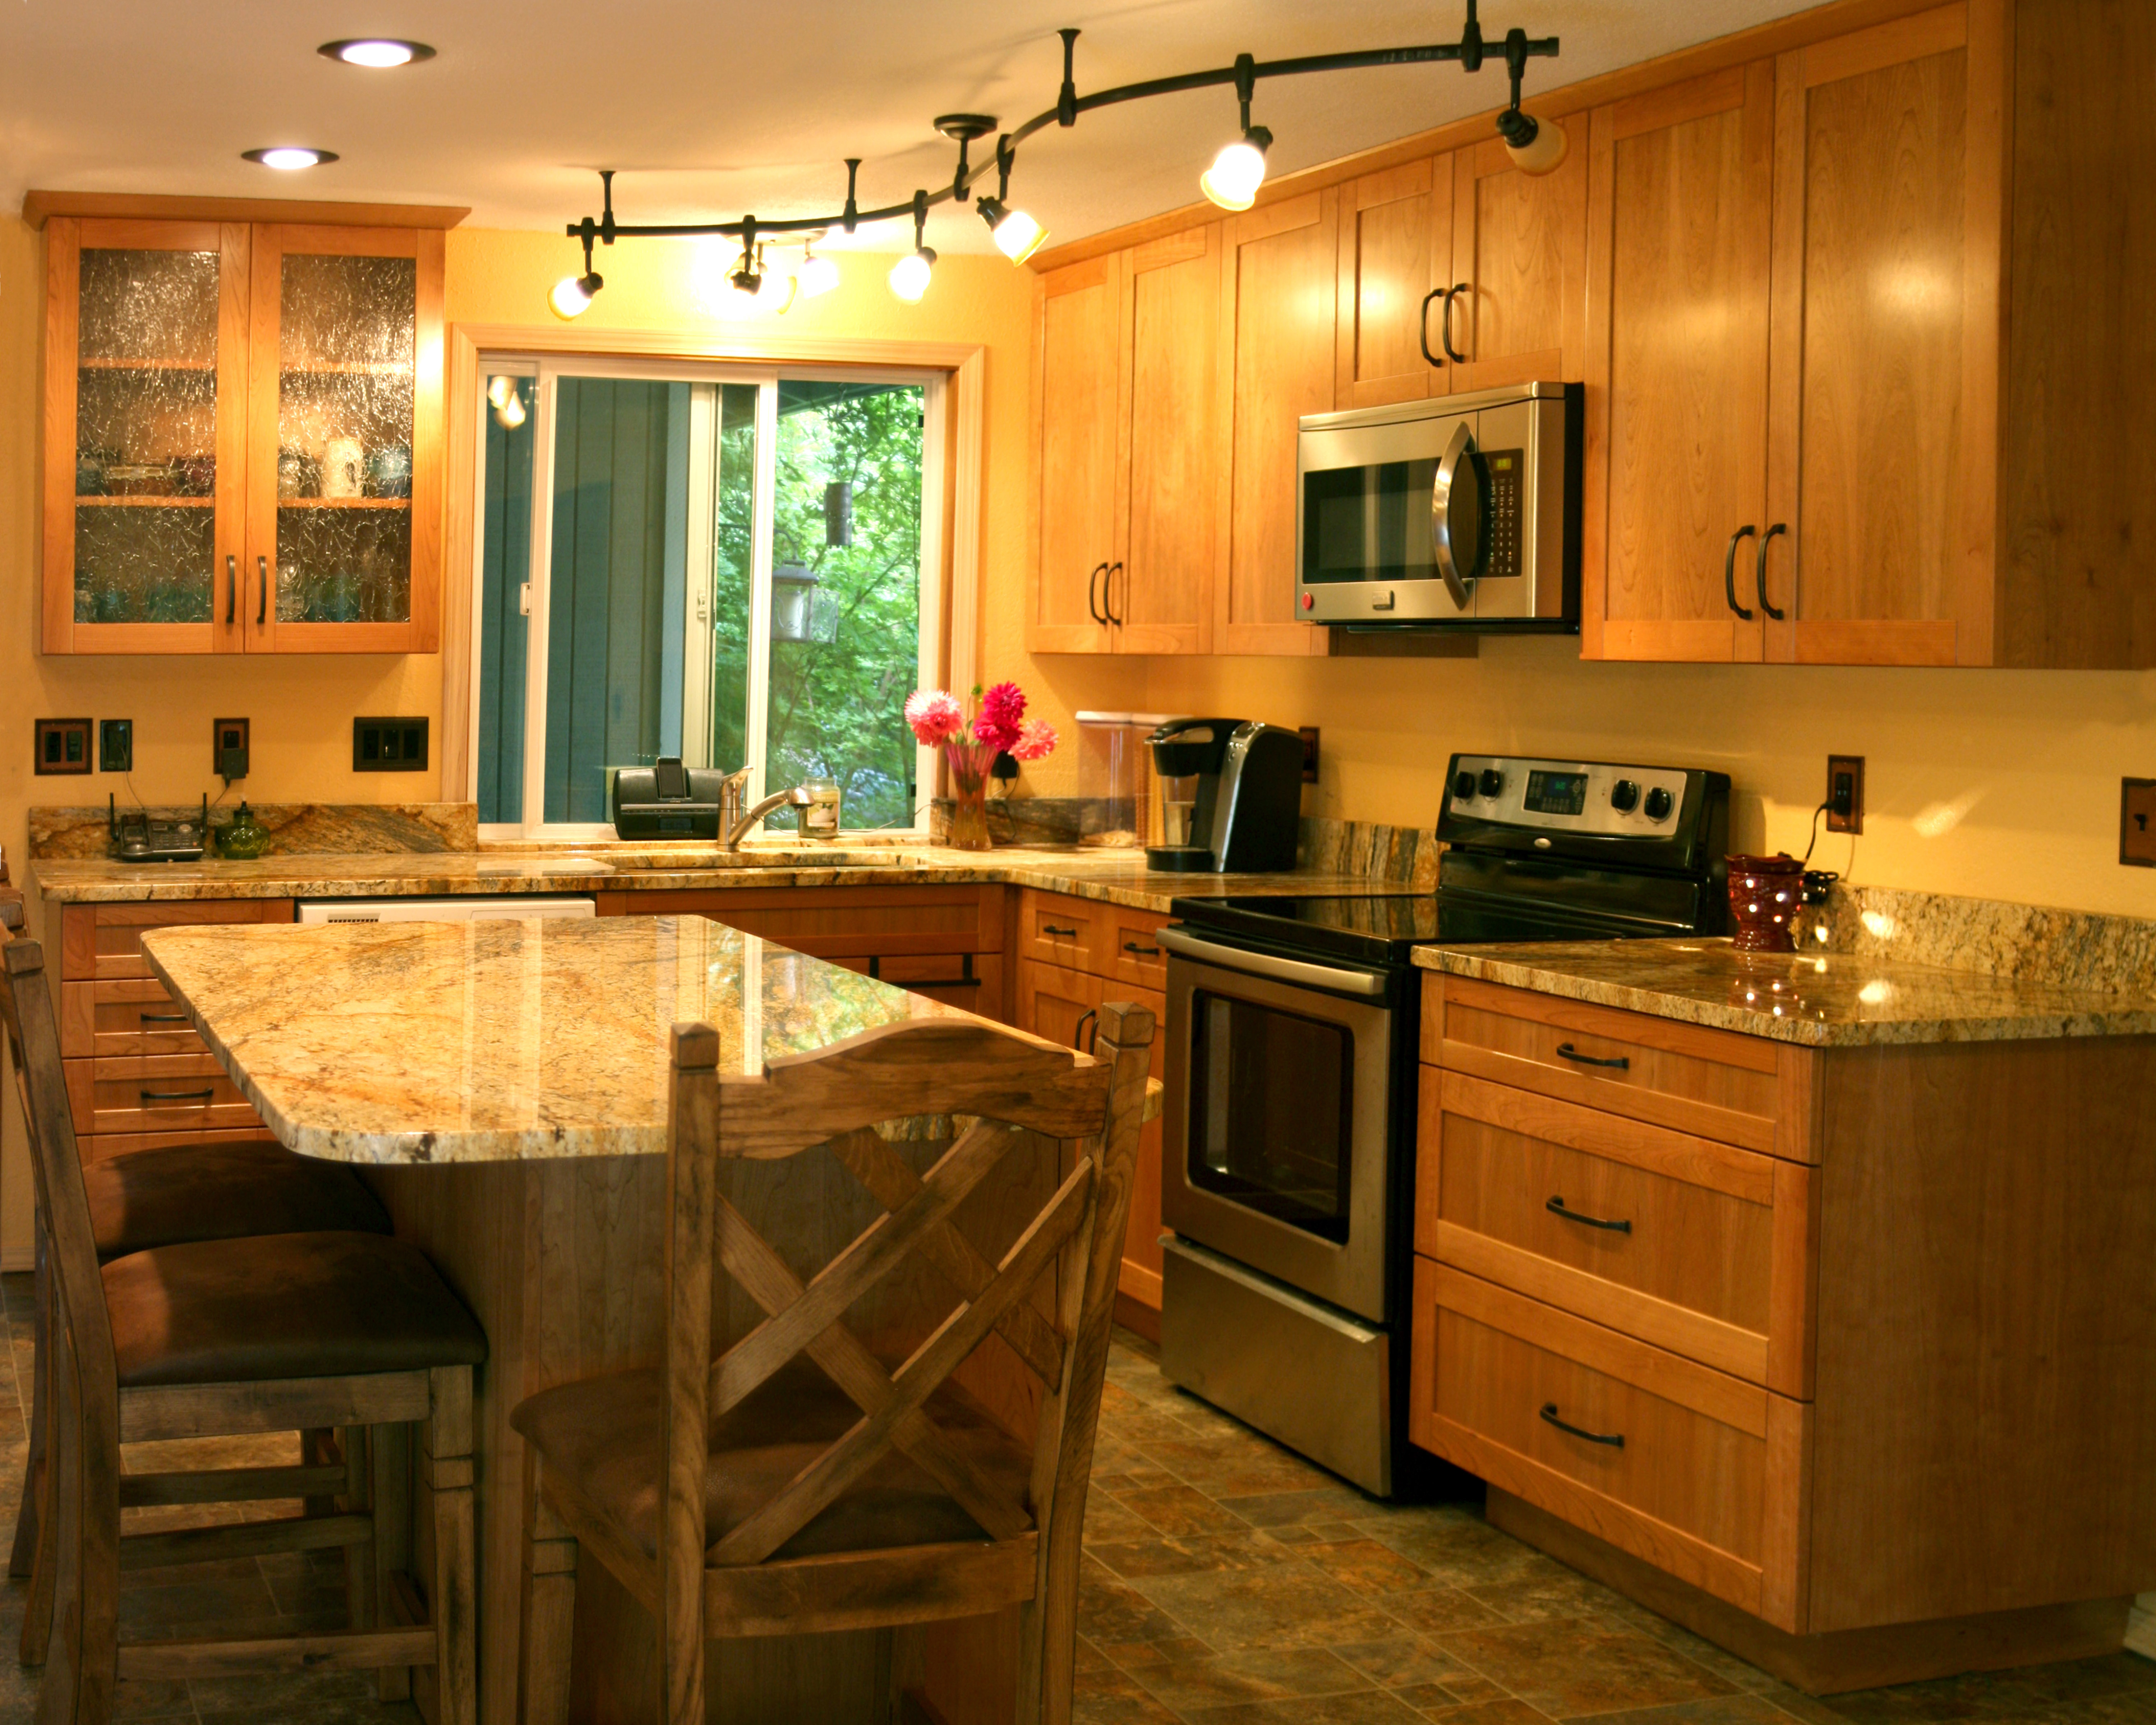 Cabinets By Trivonna Revitalizes A Kitchen E Thurstontalk